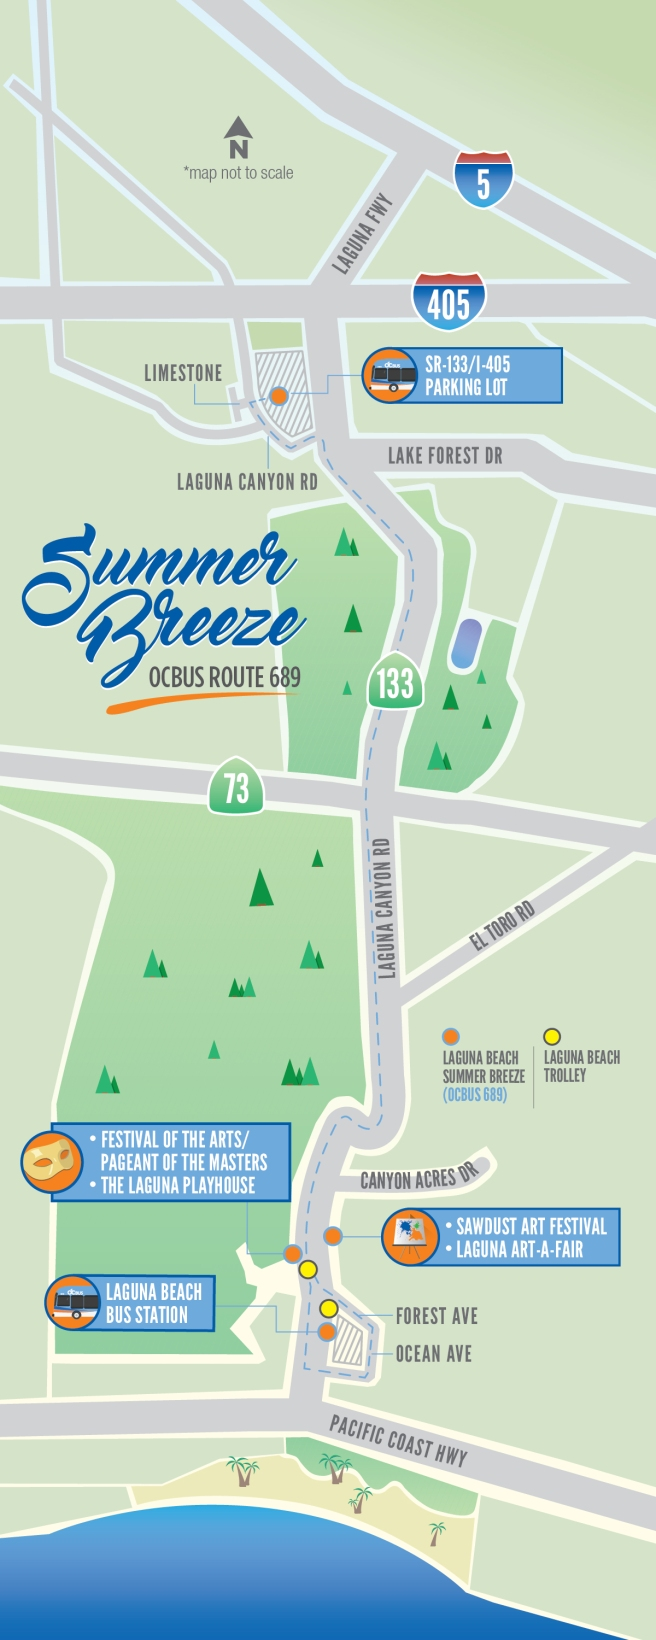 Laguna Beach OCTA Summer Breeze 2017 Map